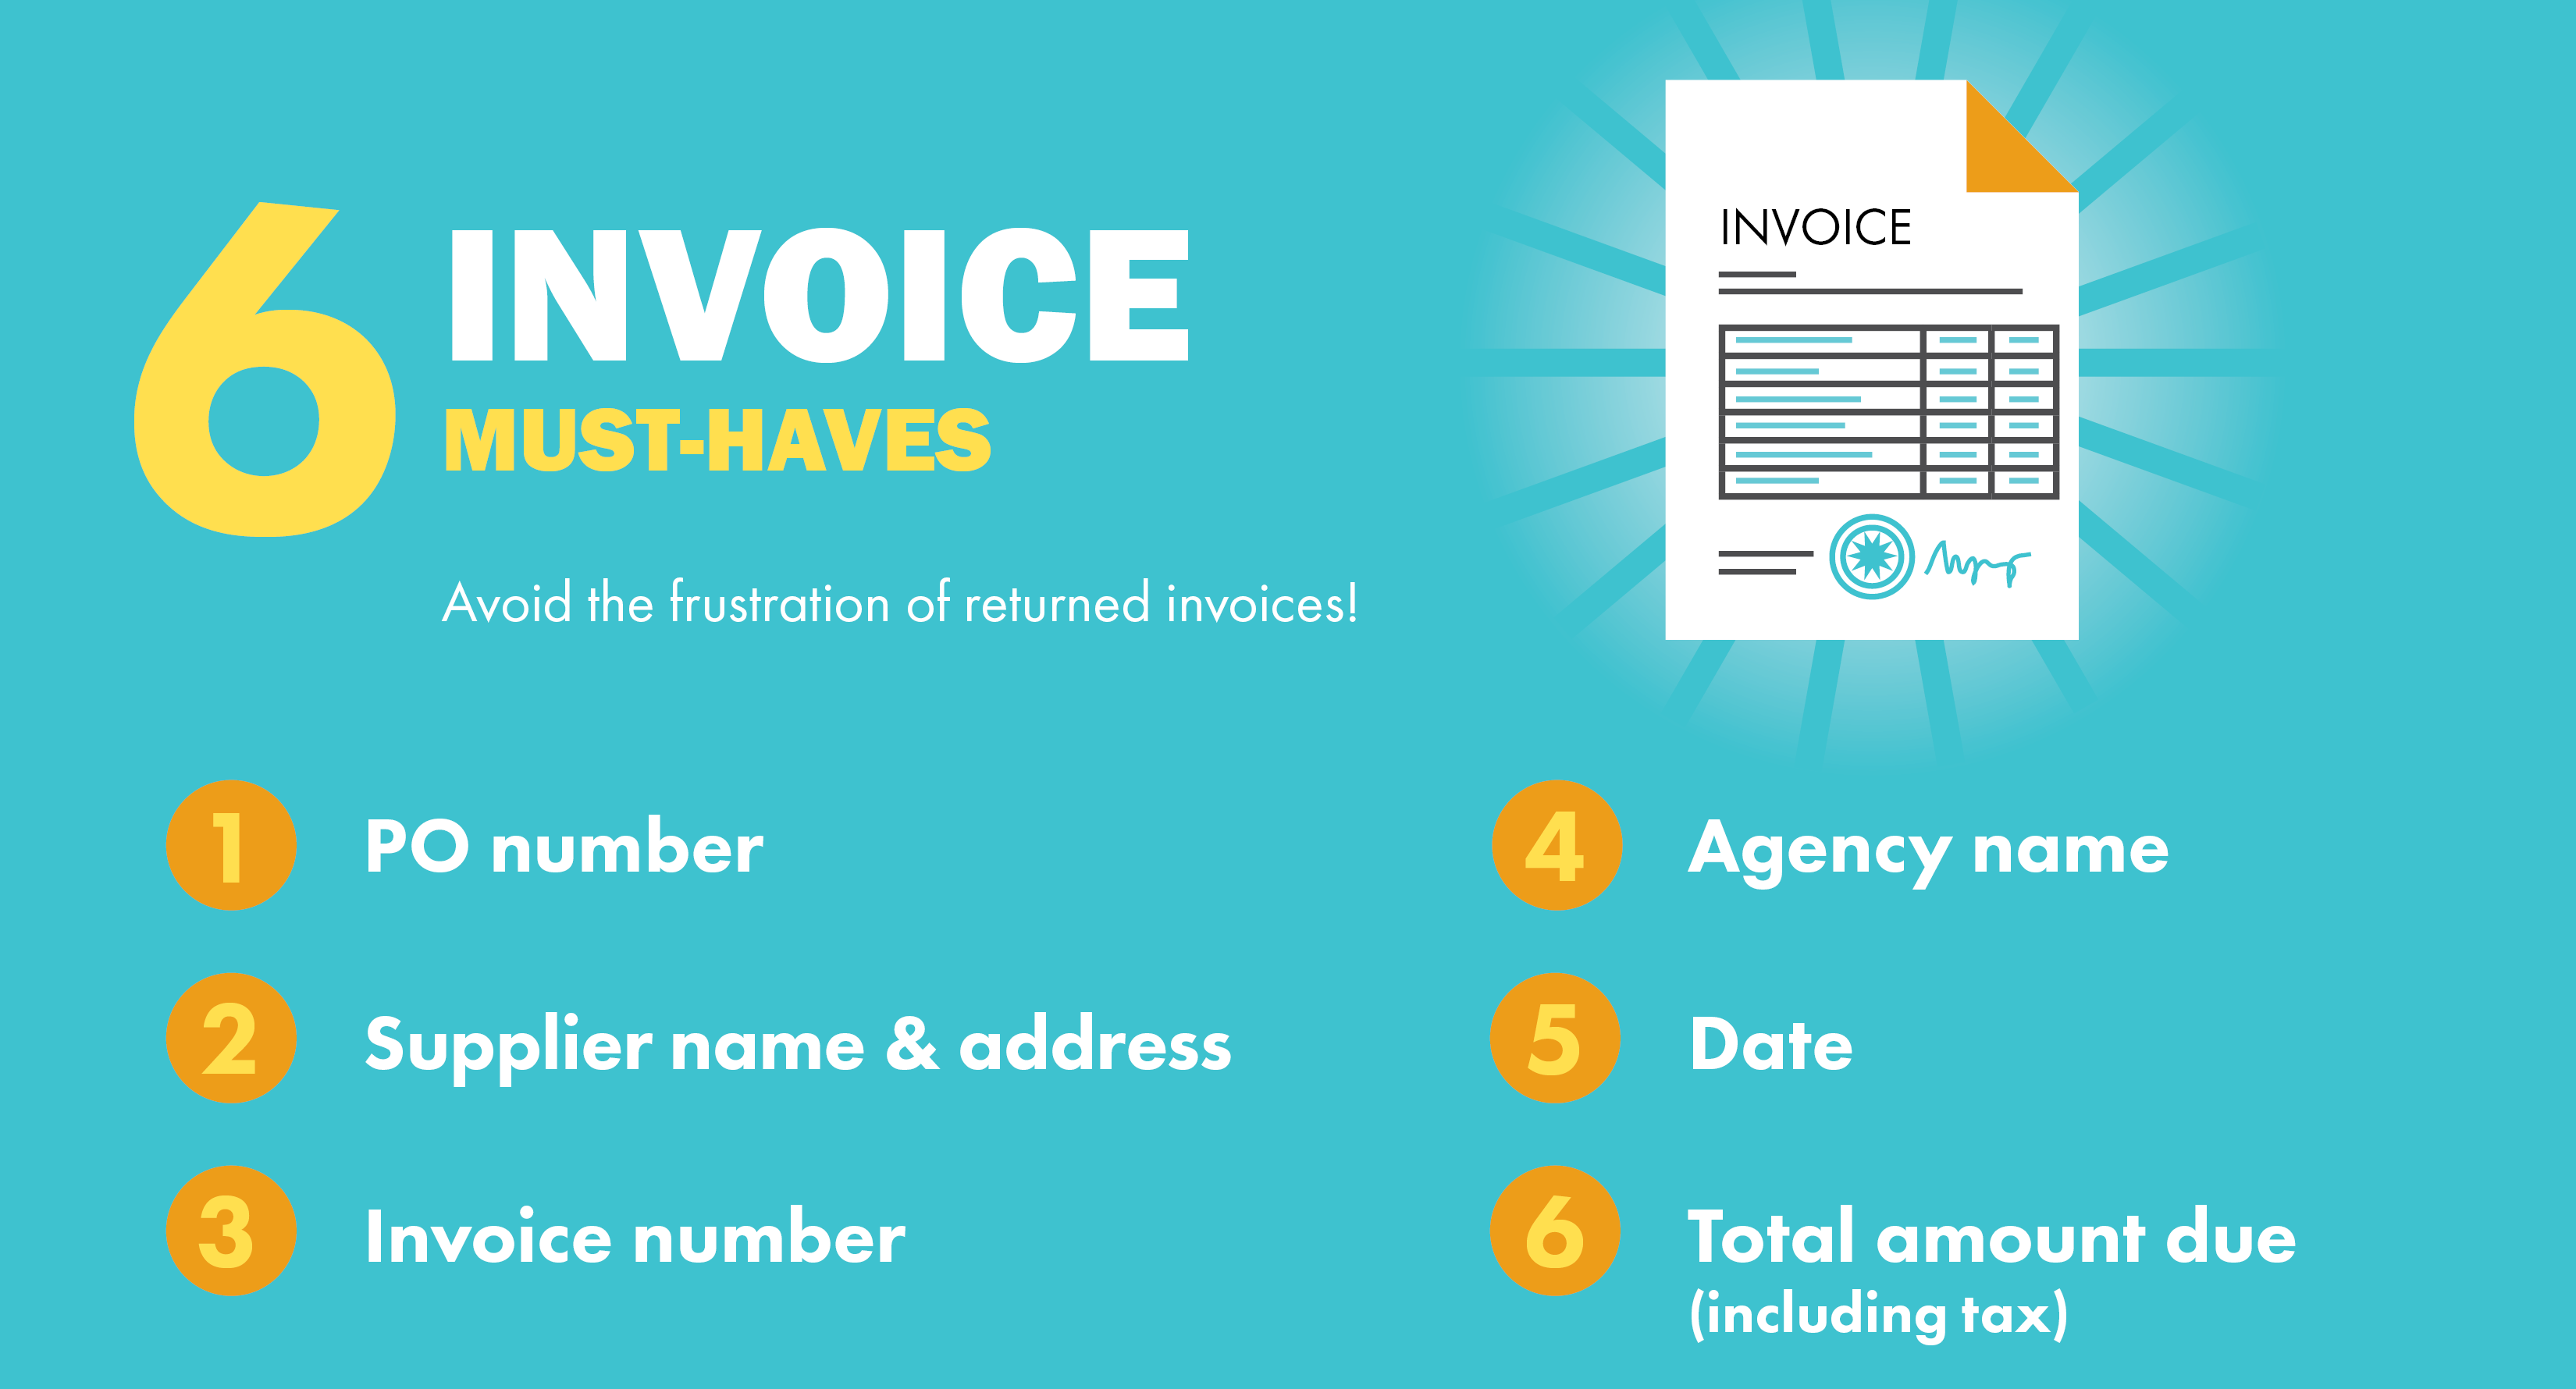 Invoices_Infographic_Blue